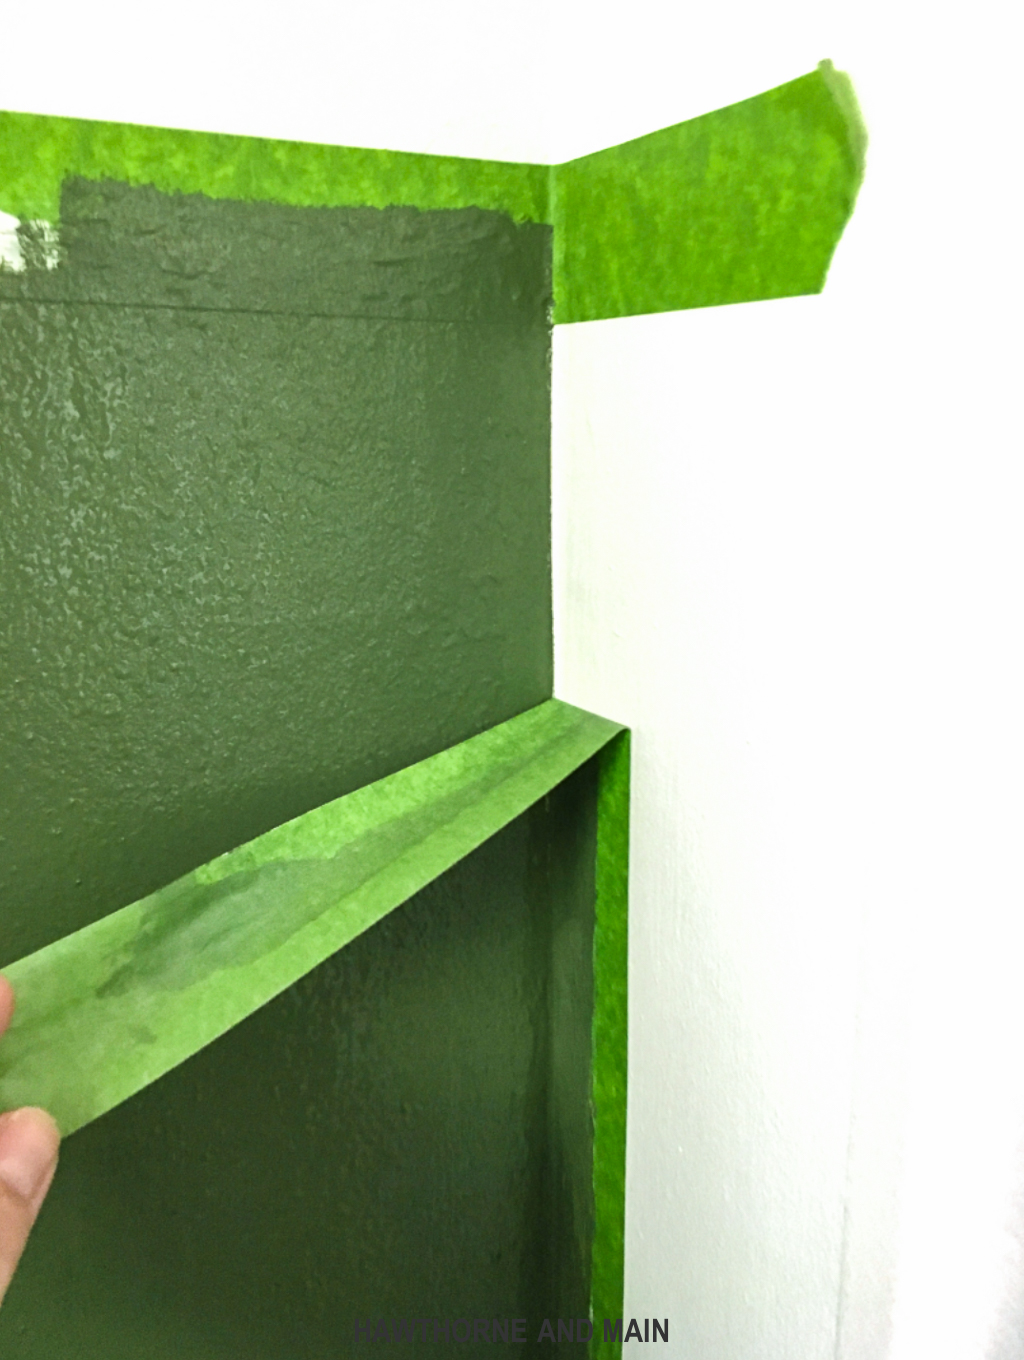 pulling-off-frog-tape-on-a-green-wall